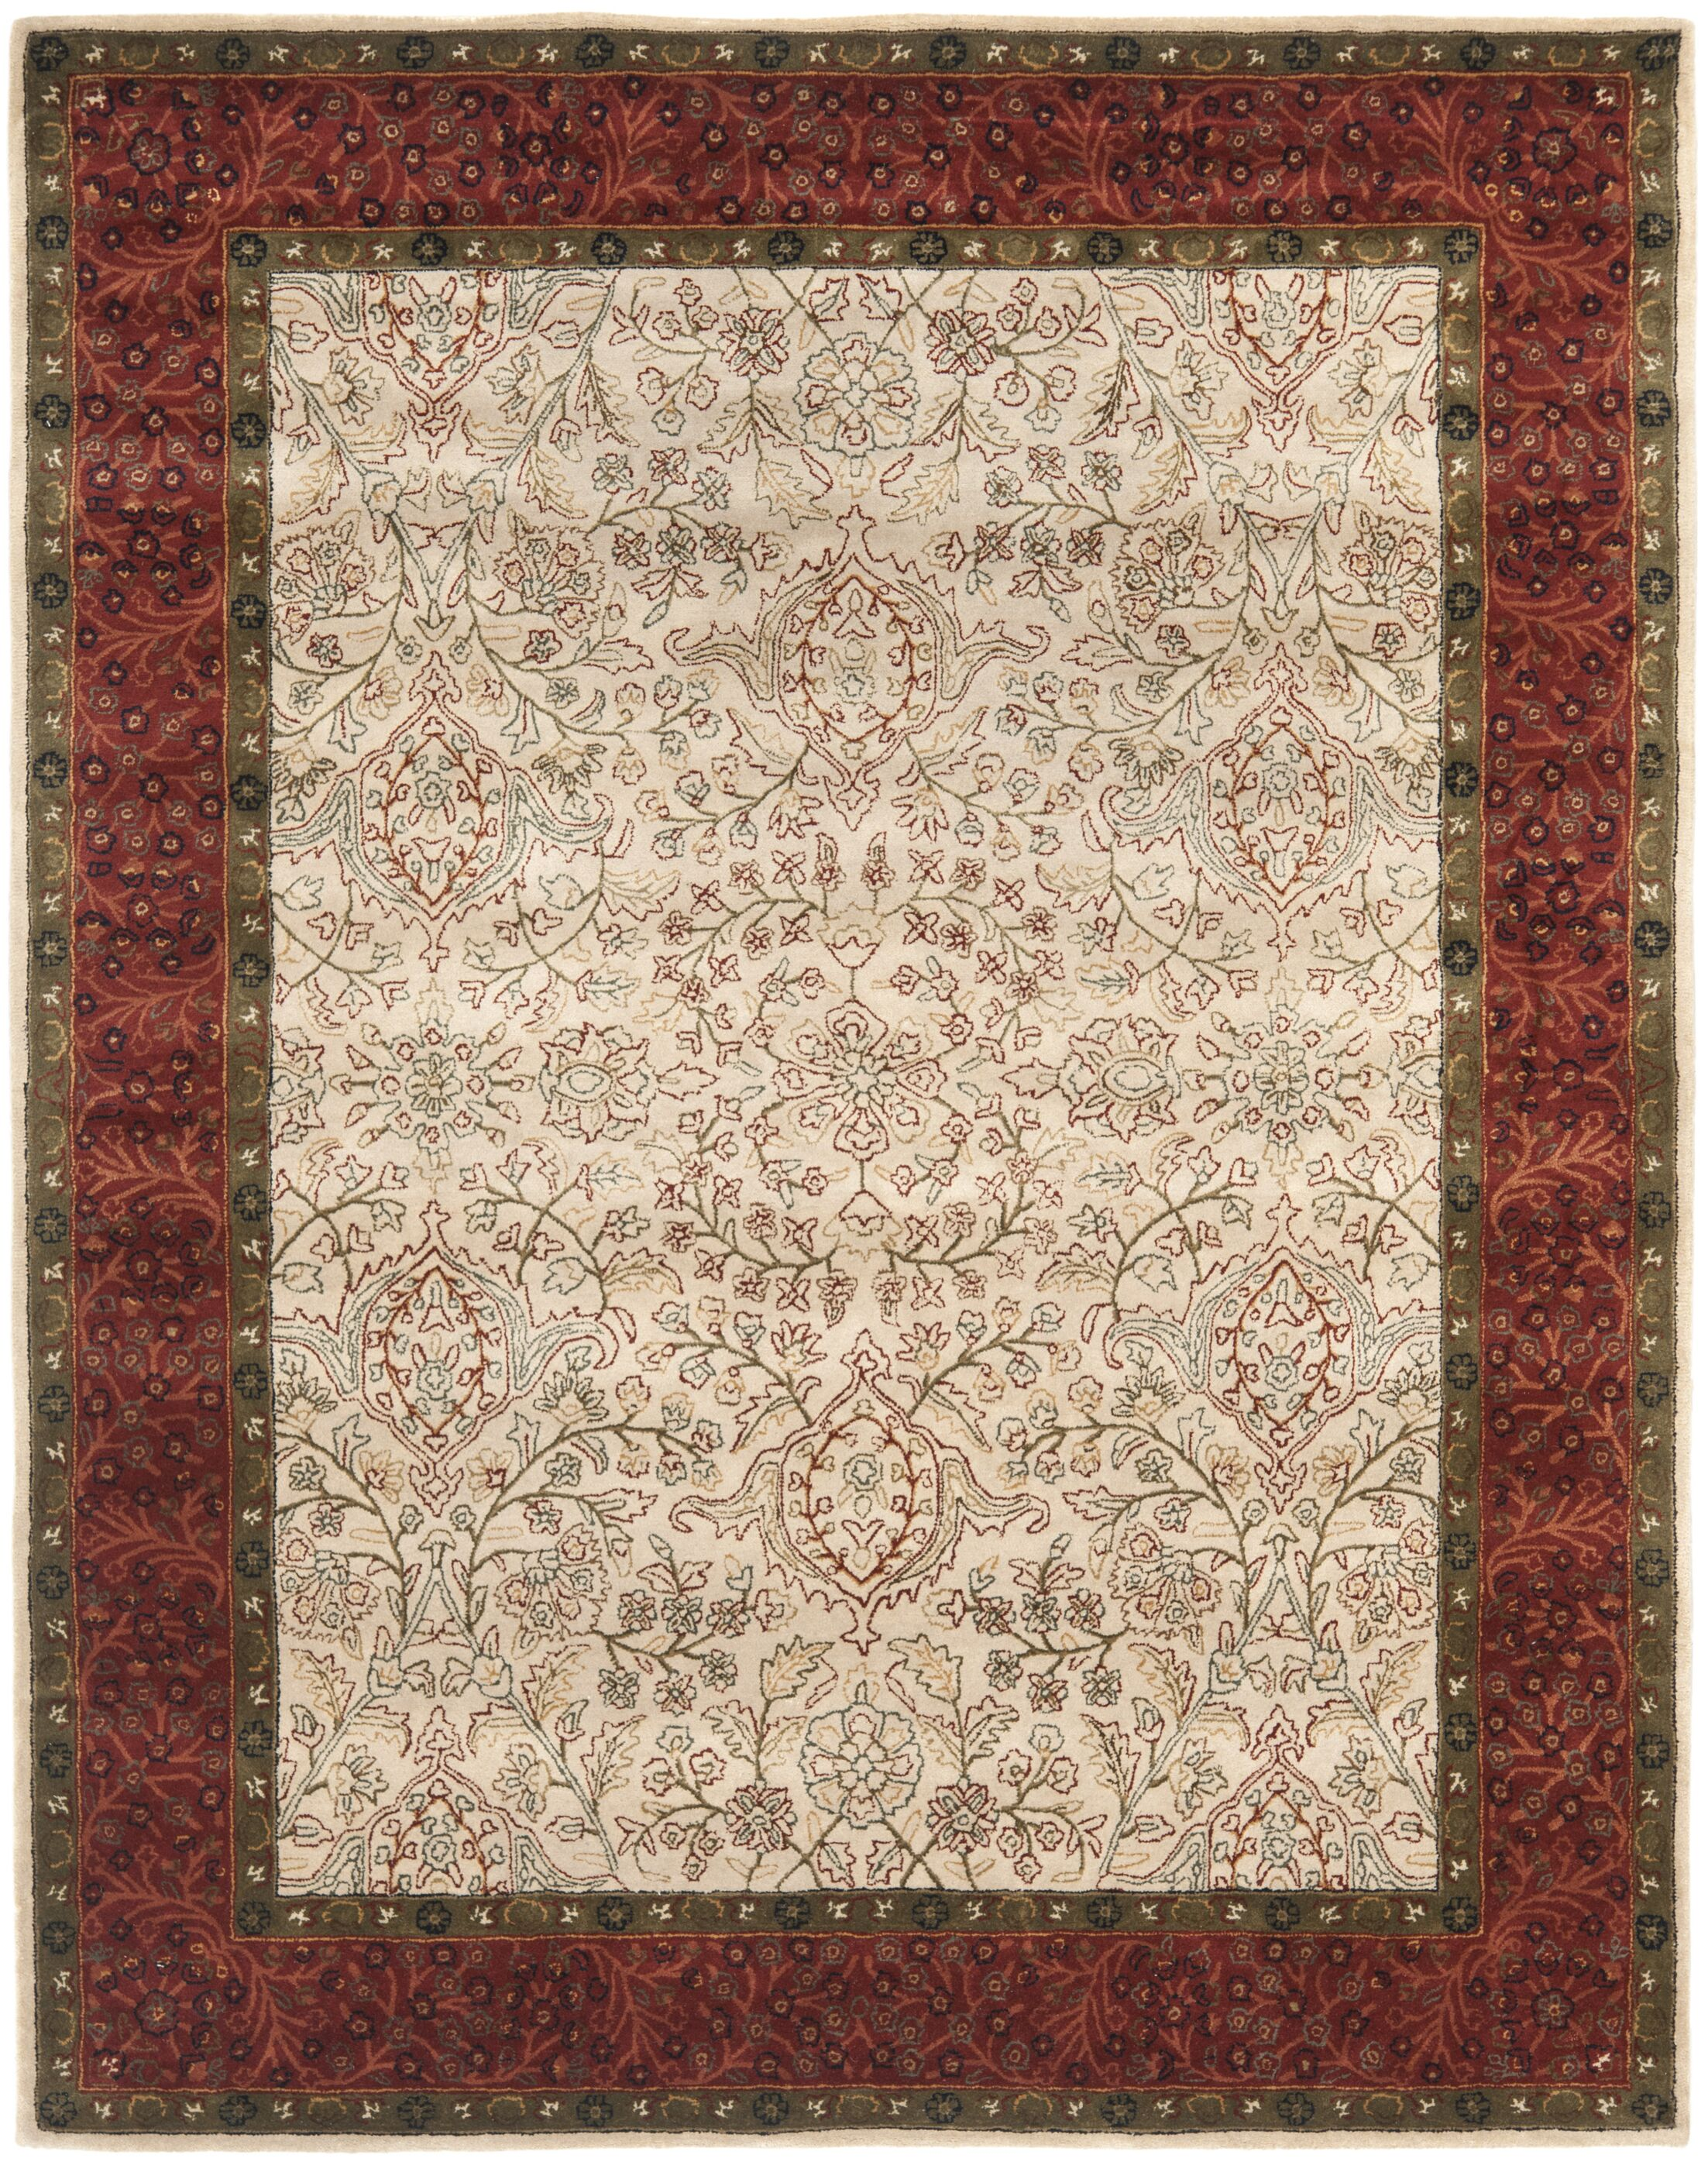 Griswold Hand-Tufted Ivory / Rust Area Rug Rug Size: Rectangle 8'3